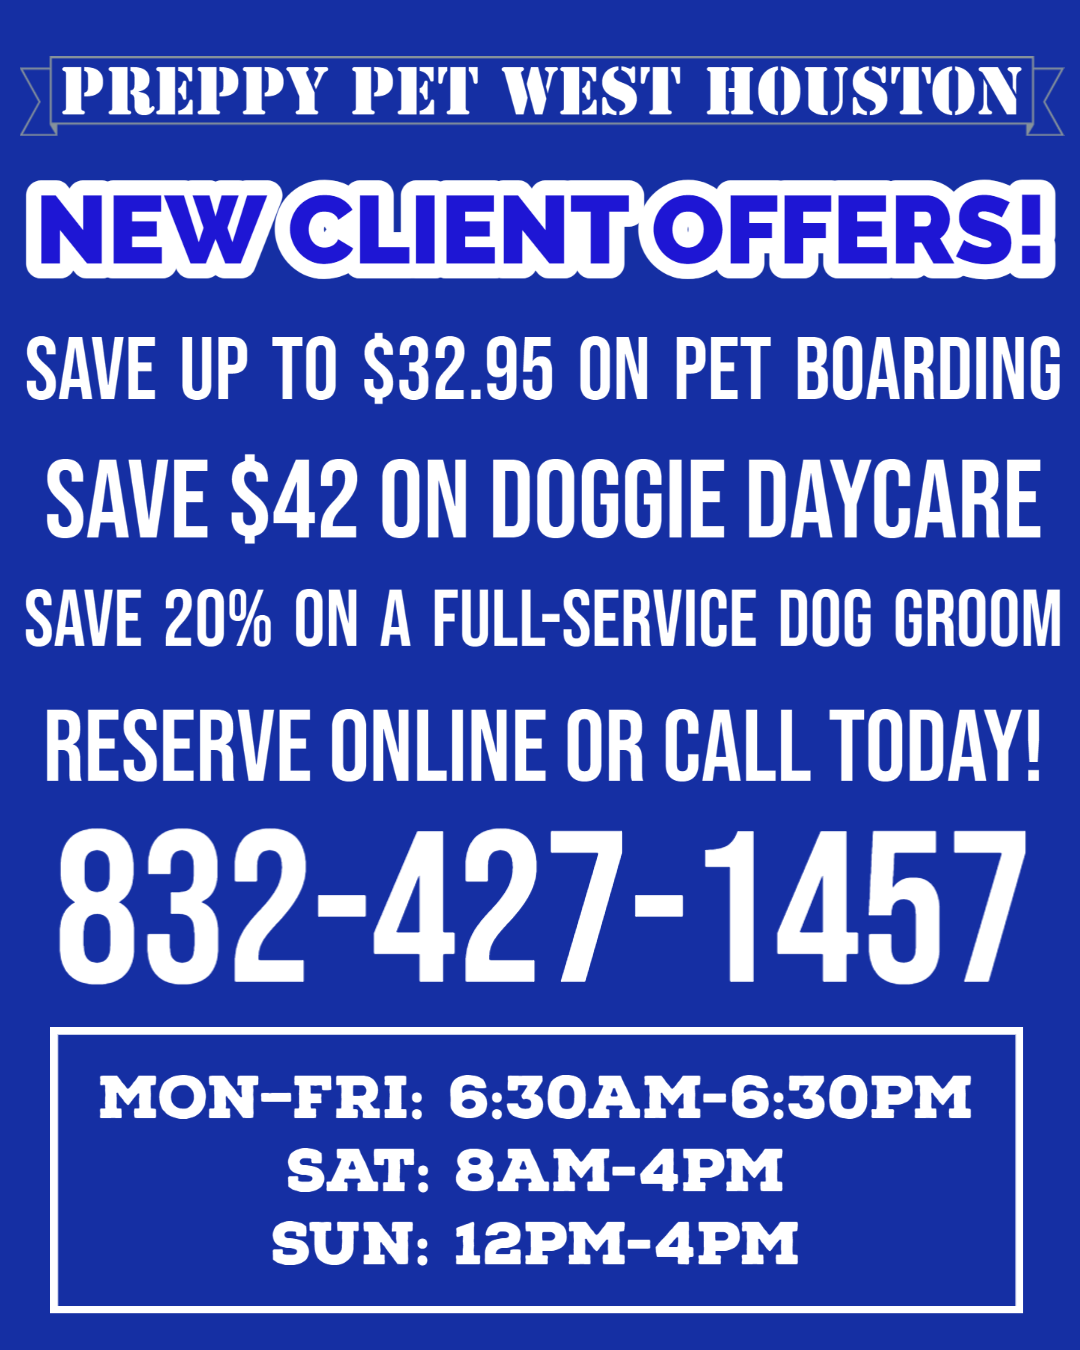 Preppy Pet West Houston New Client Offers